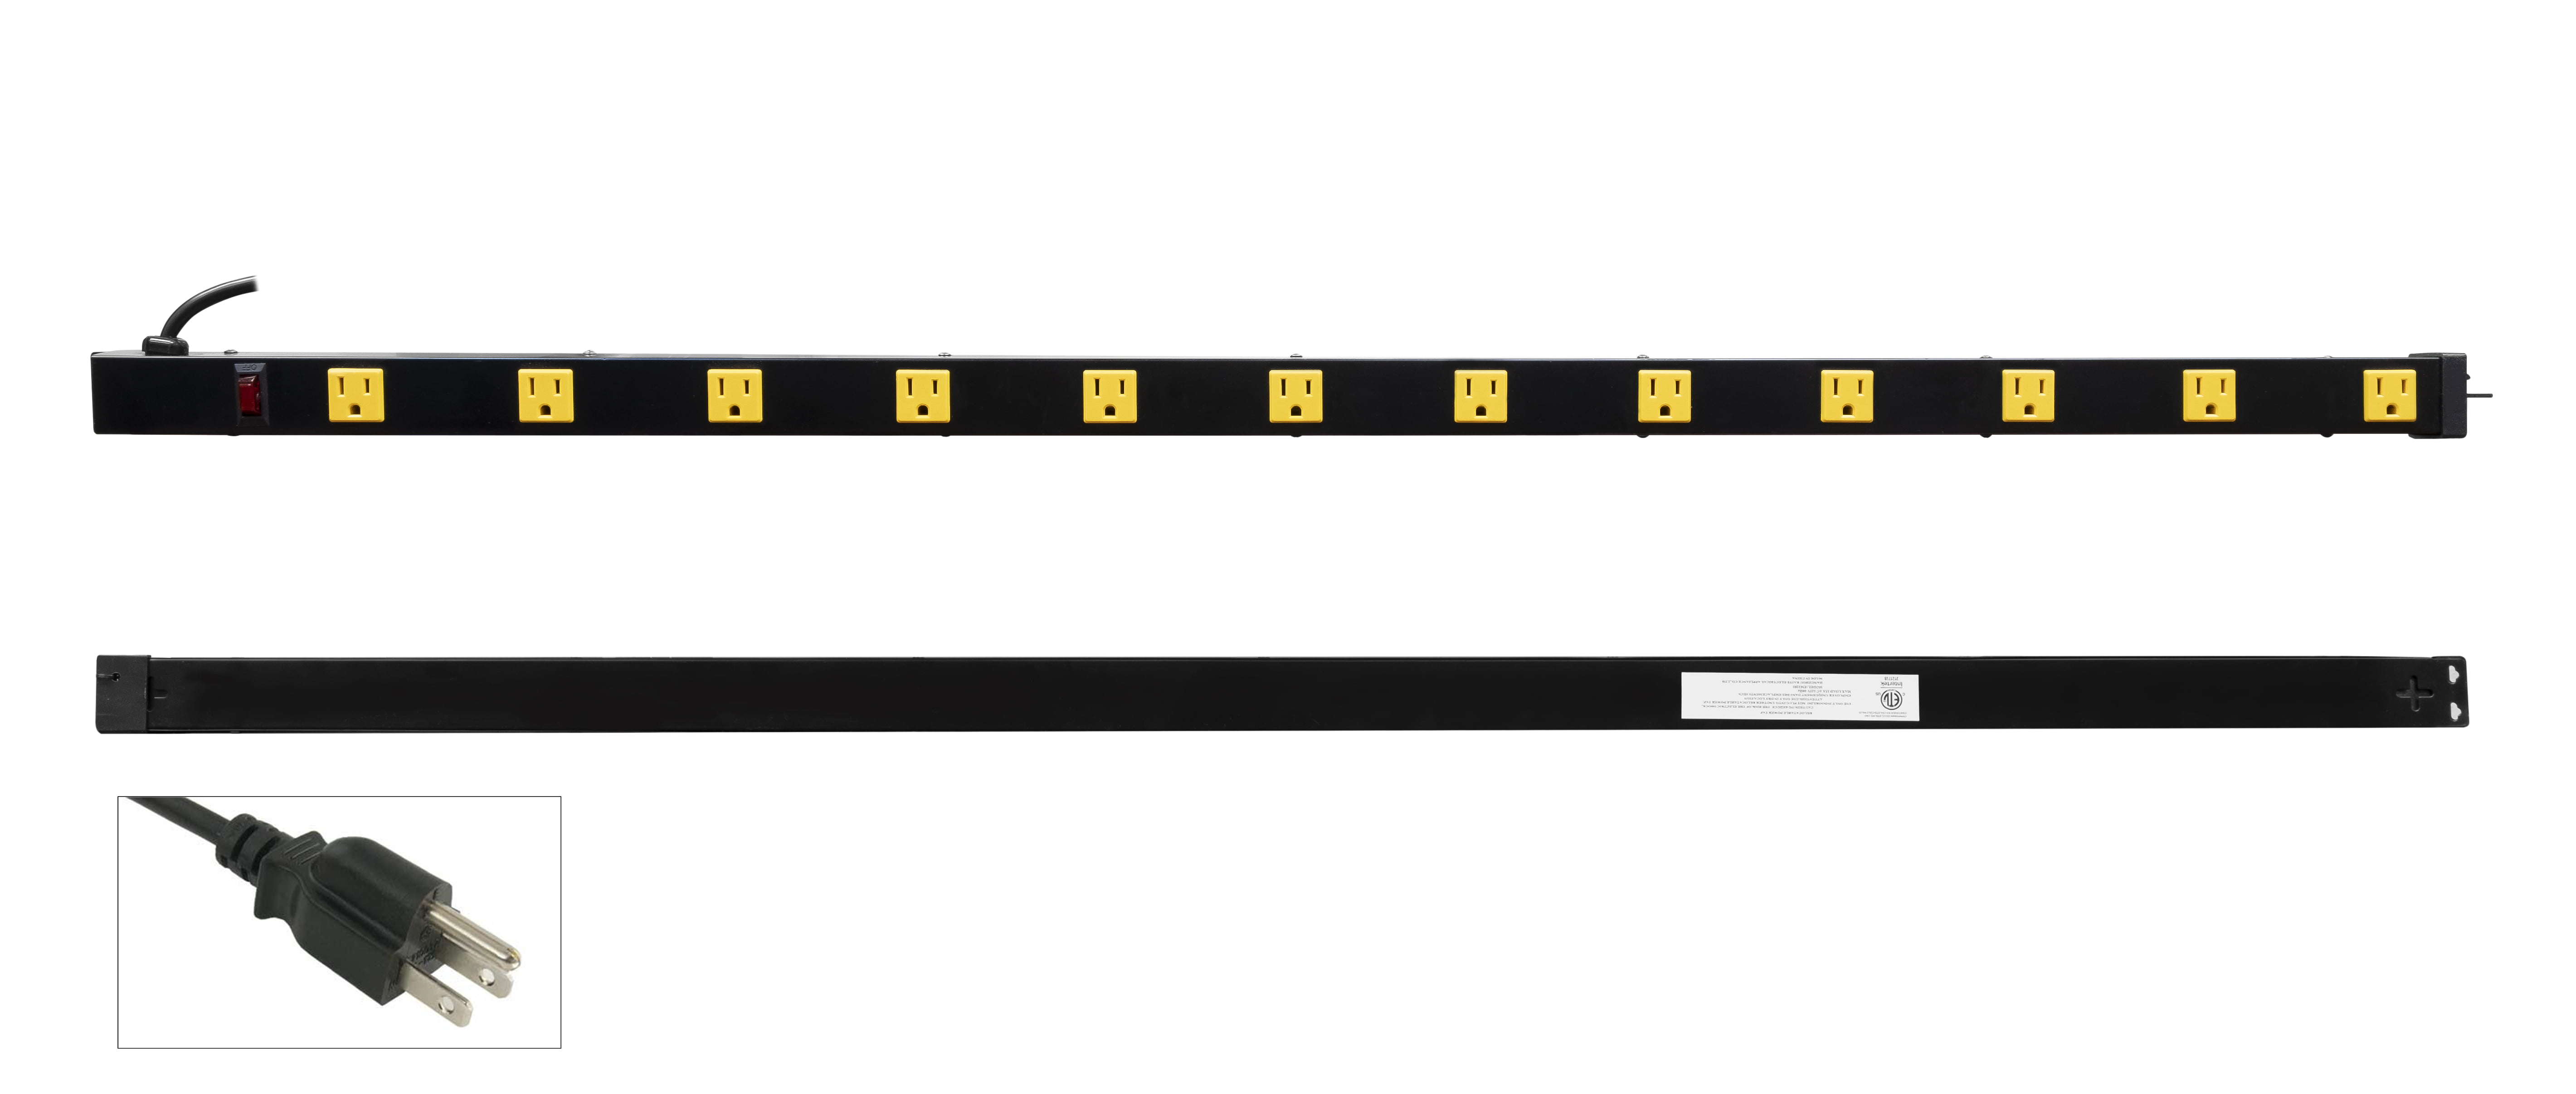 Inland - 12 Outlet 4ft Power Strip 03201 with 3ft Power Cord, Metal  Housing, 125V/15A, Lighted Combo Switch/Breaker, ETL Listed